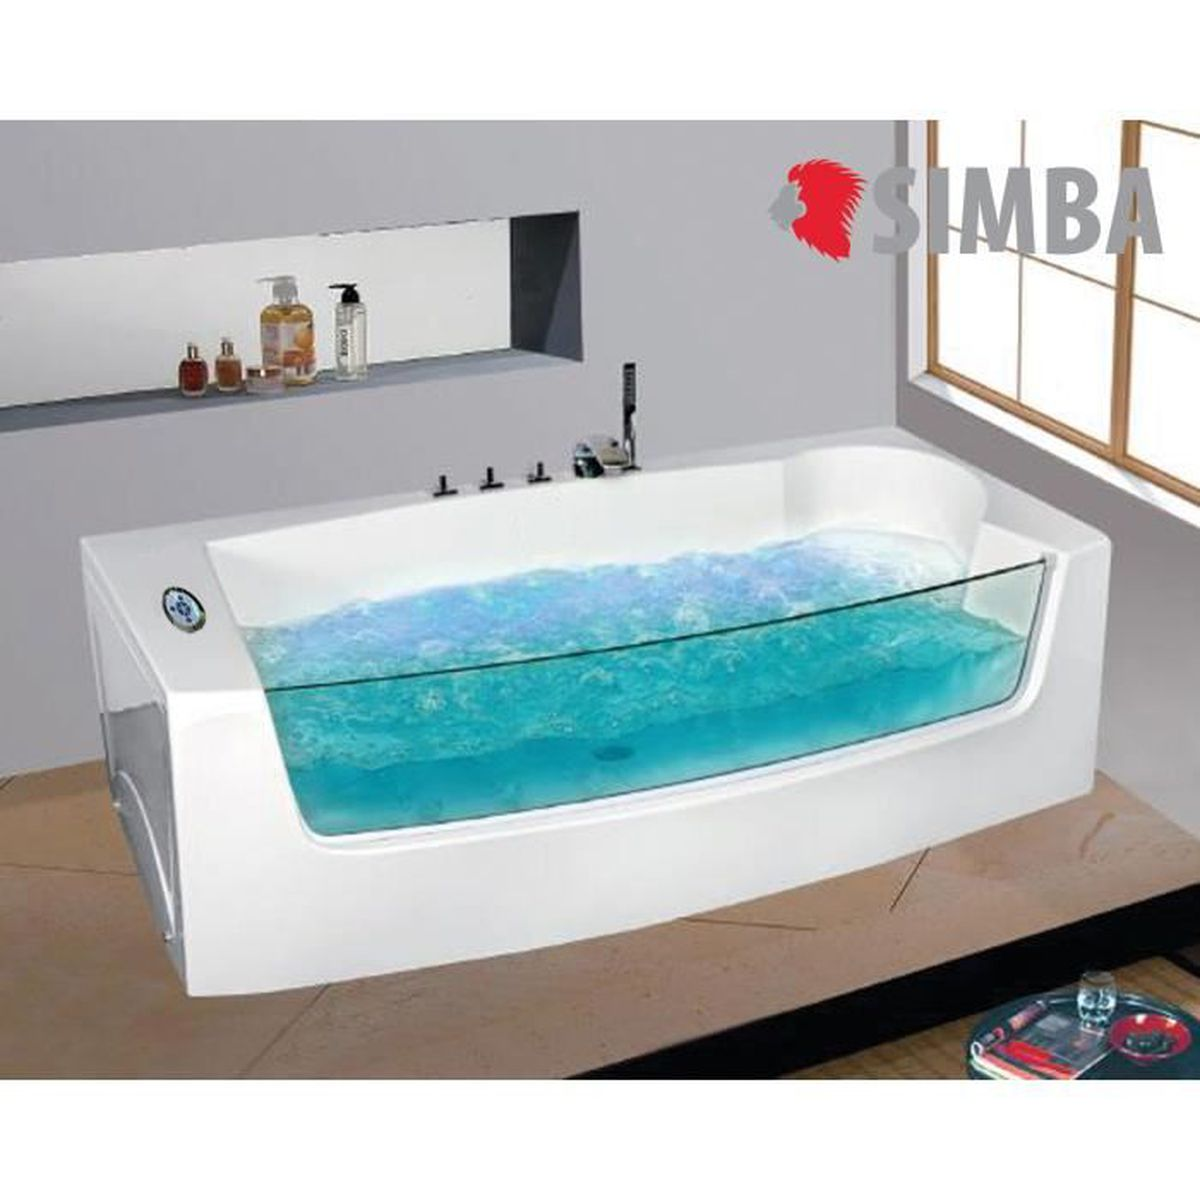 balneo beauvais cheap baignoire balneo kinedo vitalite with balneo beauvais cool baignoire. Black Bedroom Furniture Sets. Home Design Ideas